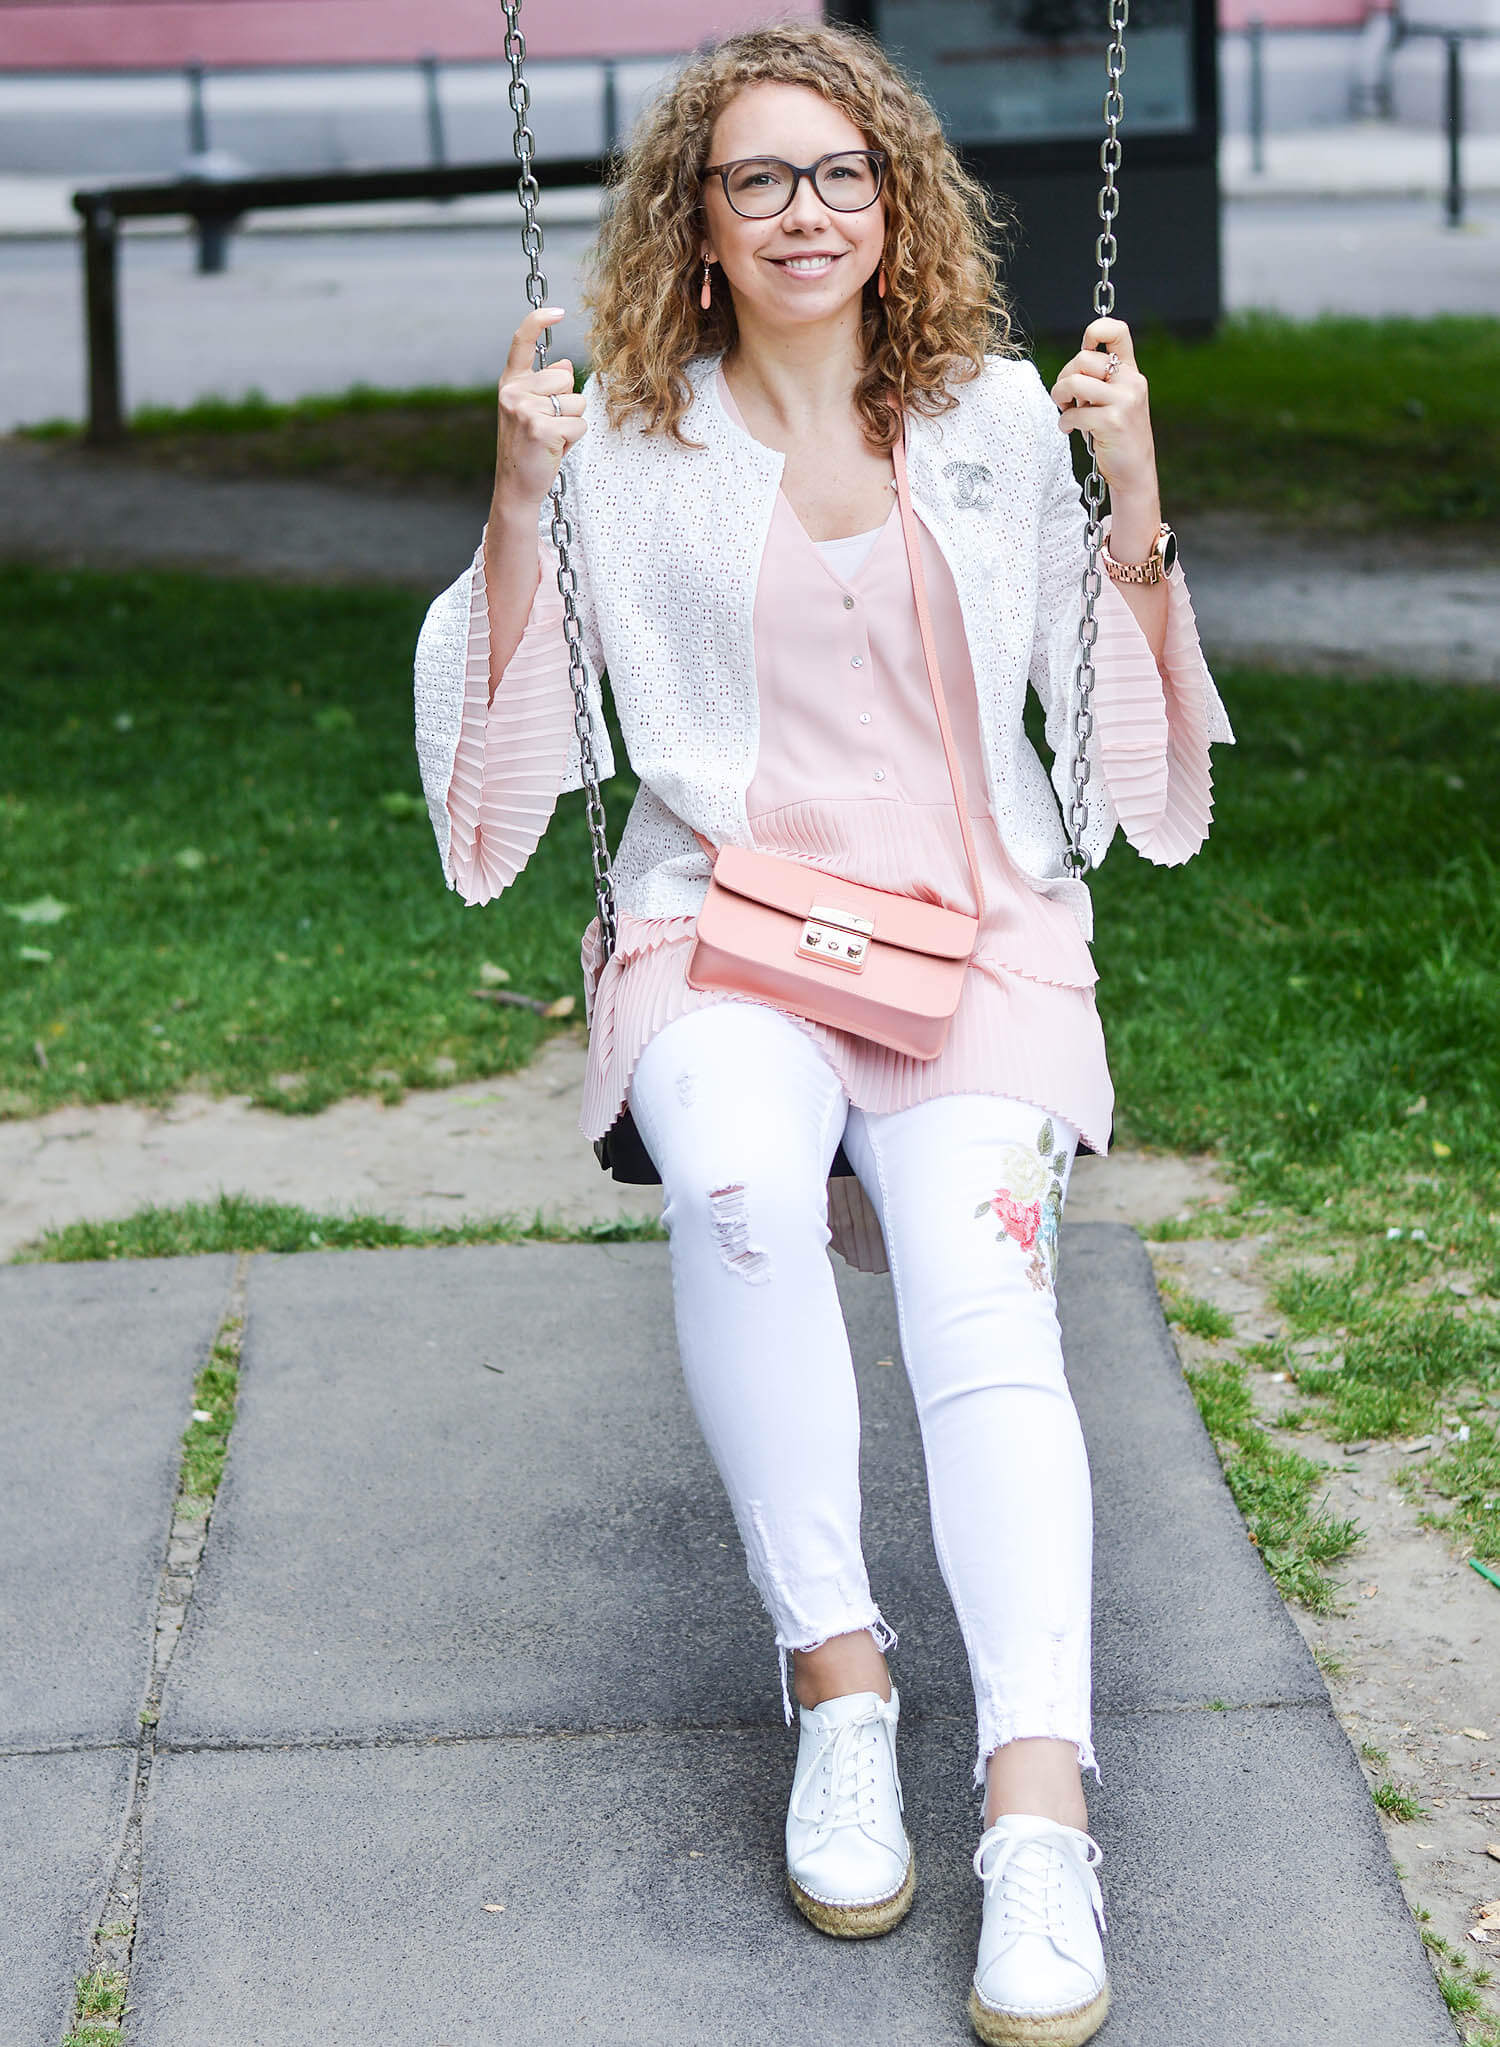 Outfit-Pale-Pink-Pleated-Blouse-with-White-Lace-Jacket-&-Denim-kationette-fashionblogger-nrw